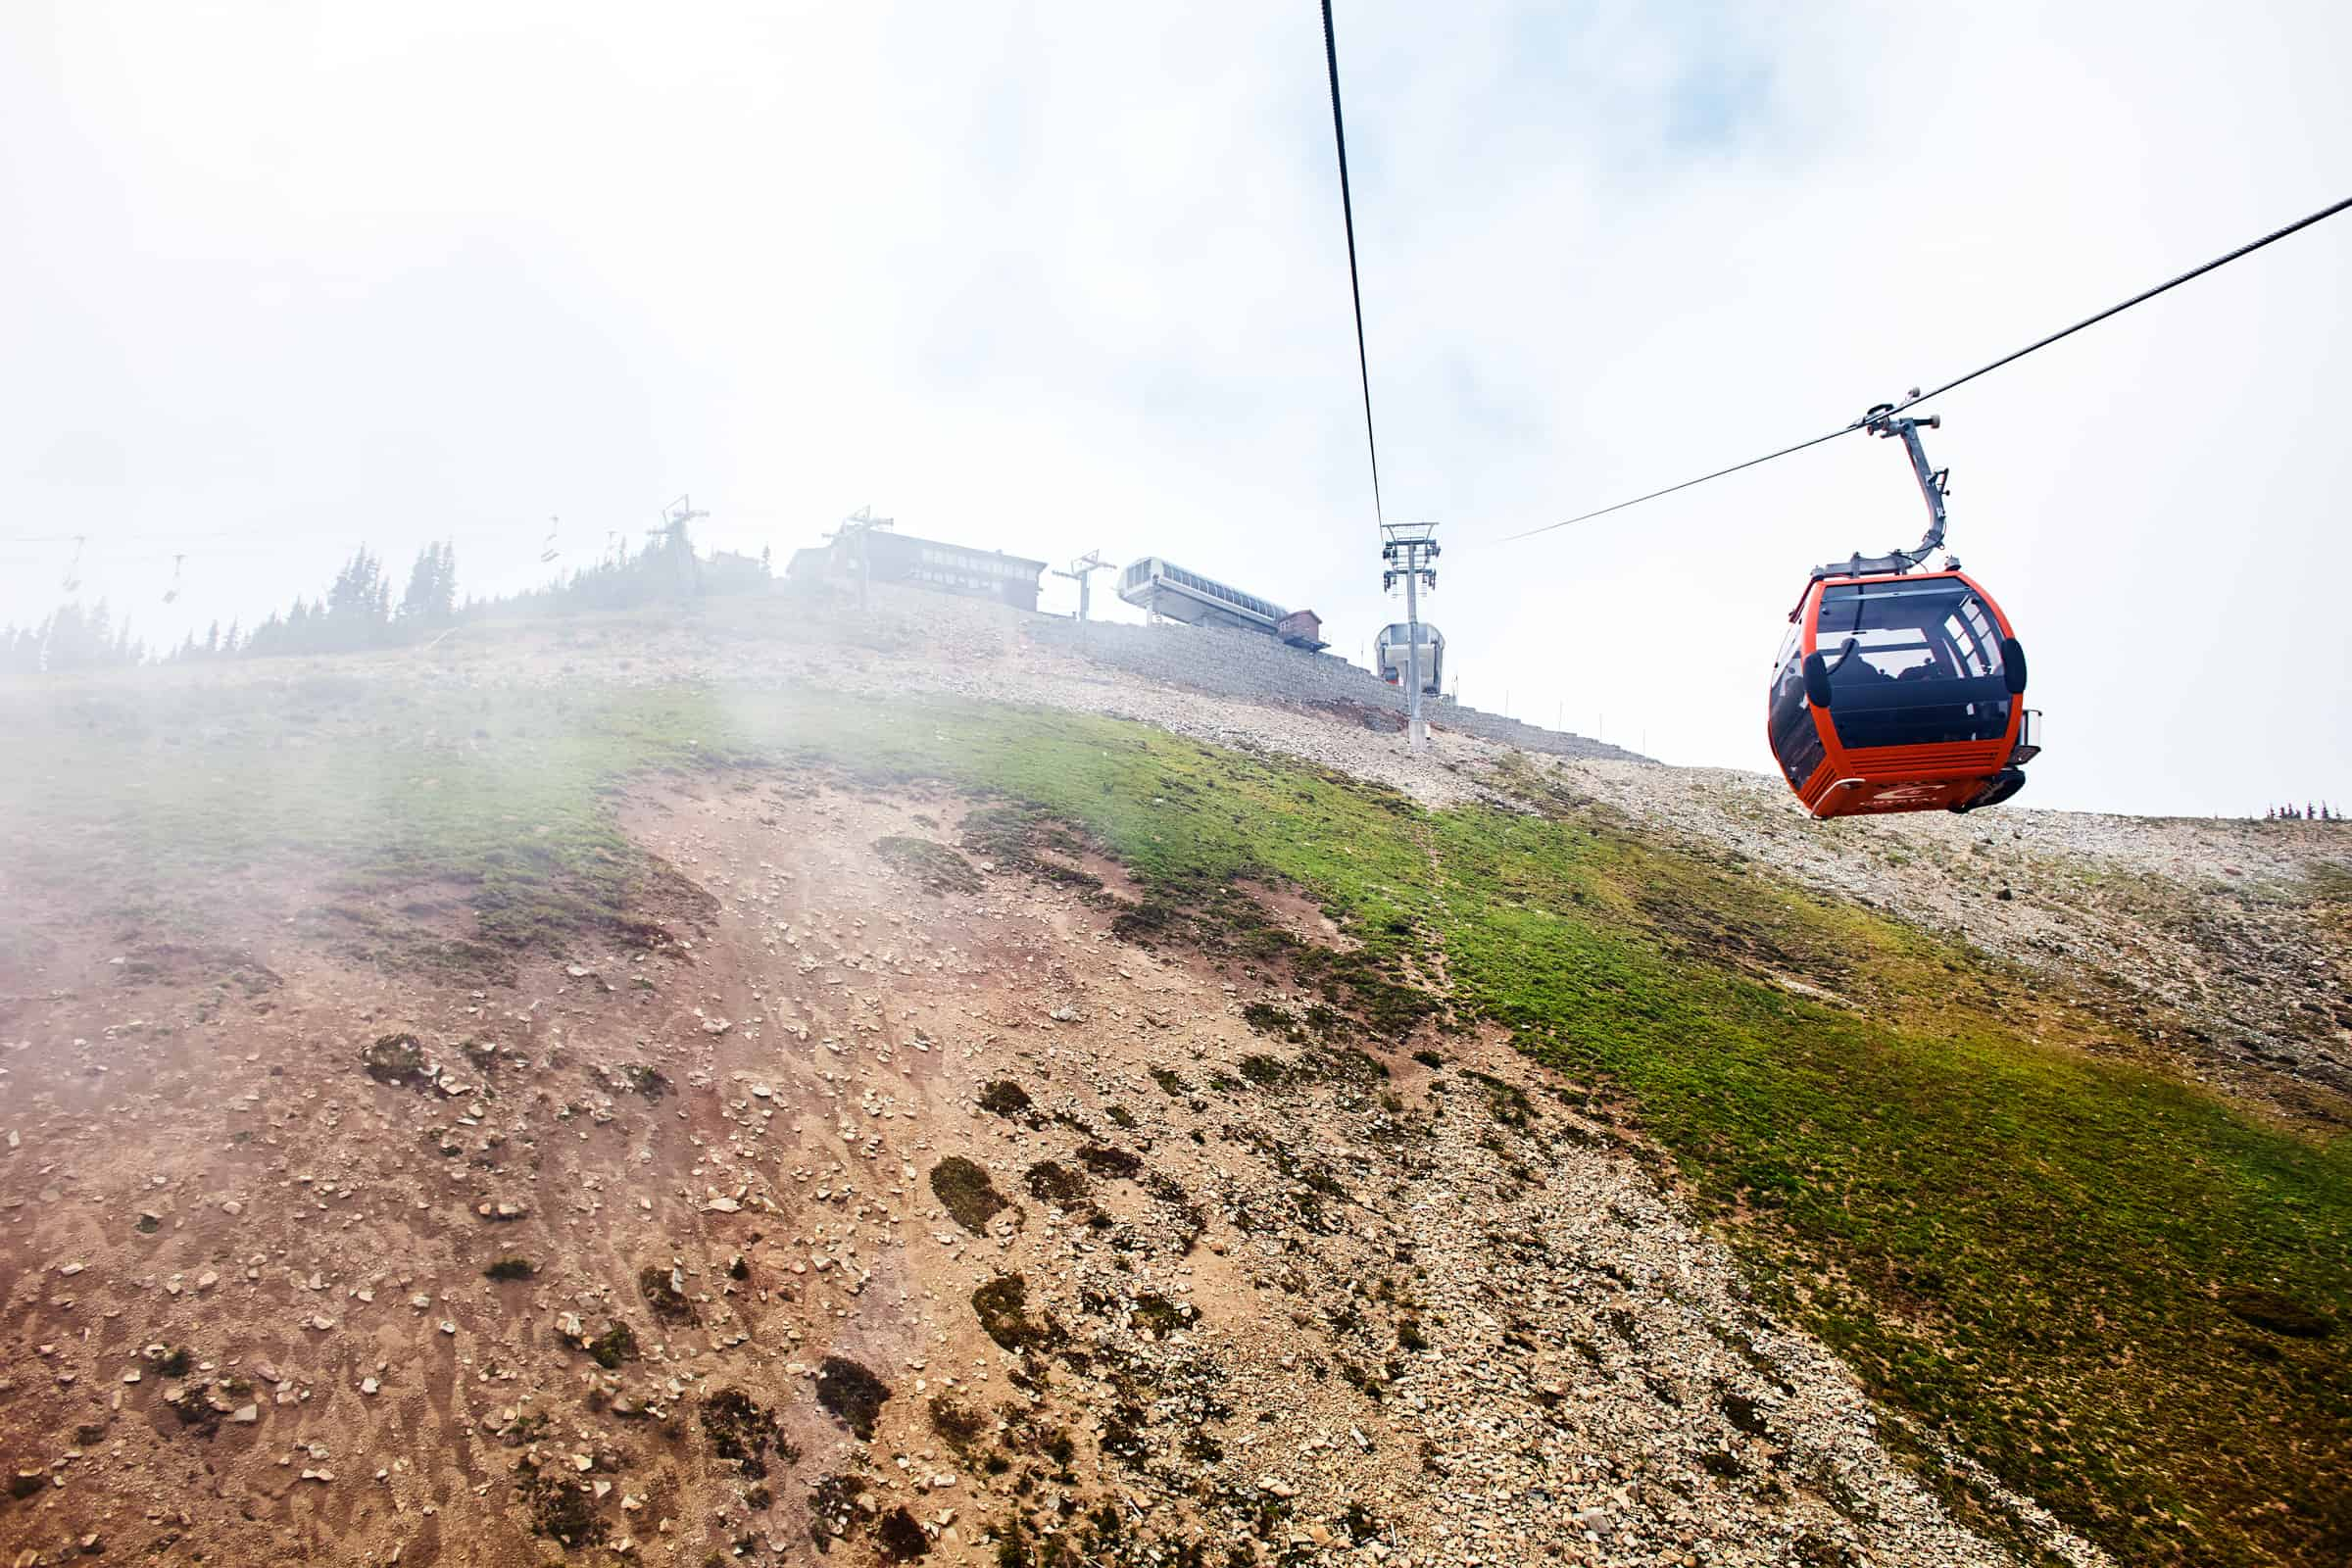 gondola at Crystal Mountain summit